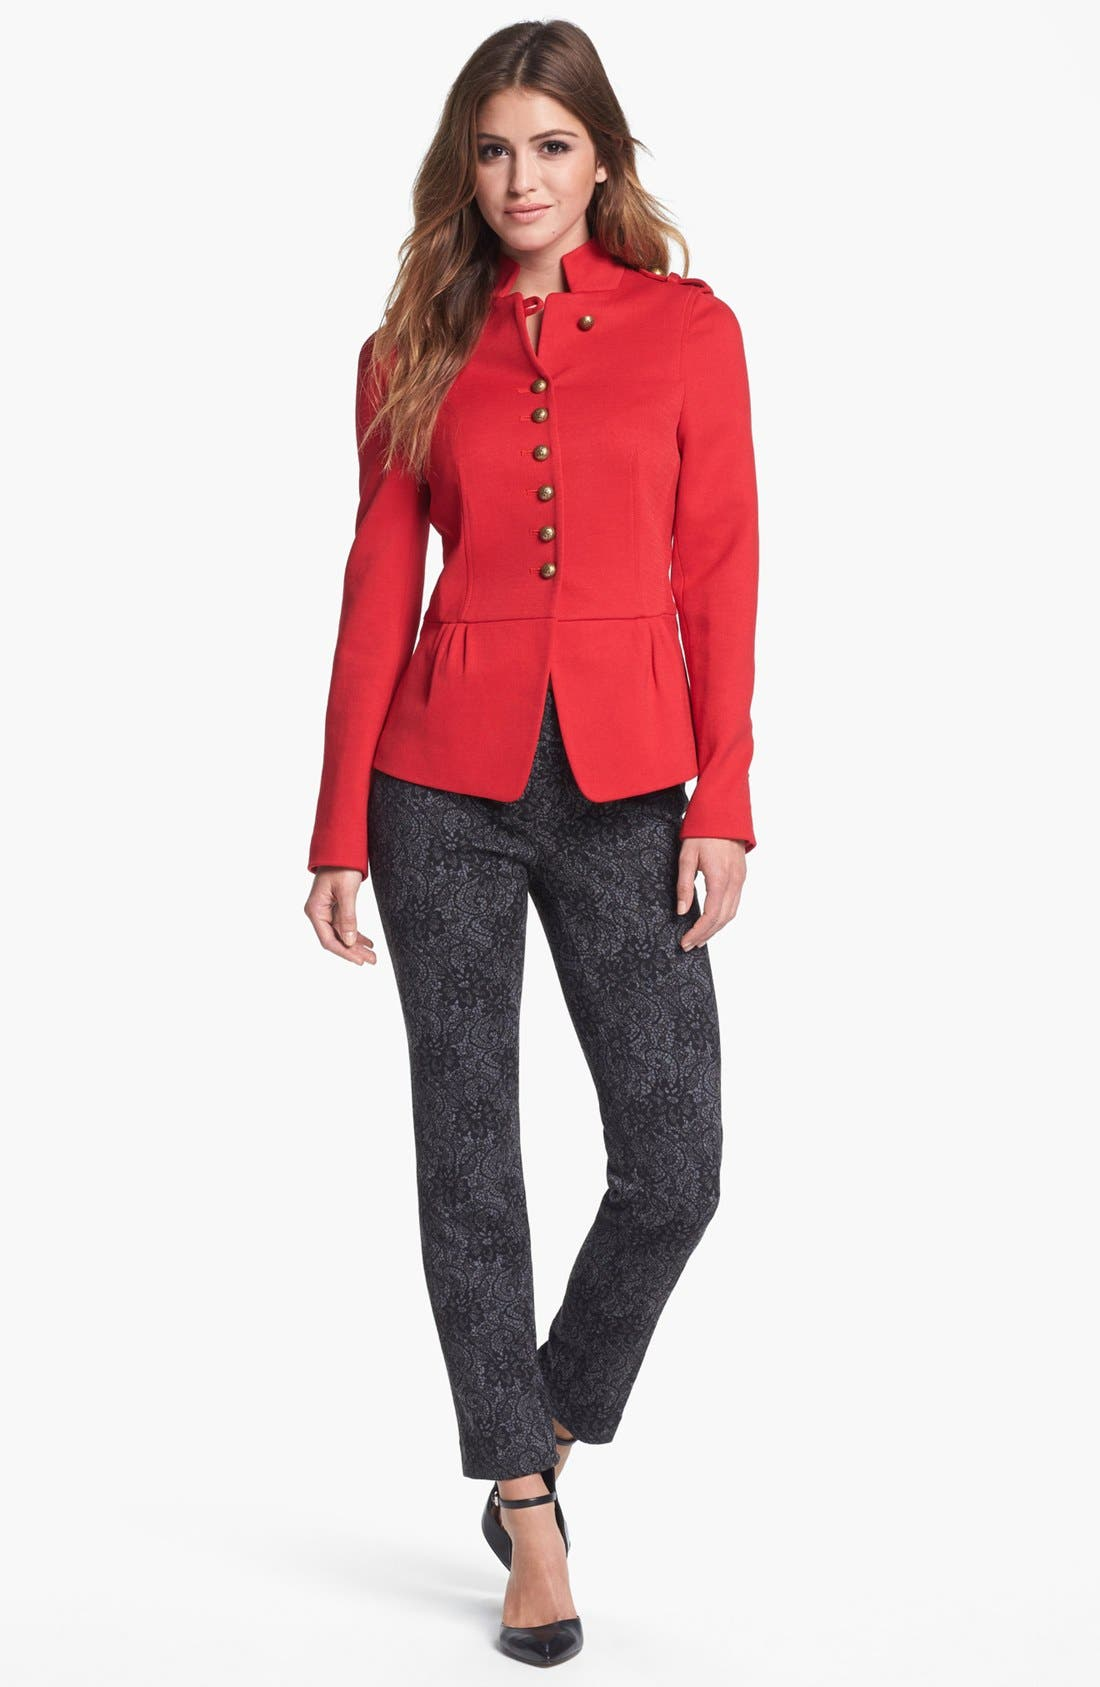 Alternate Image 1 Selected - Vince Camuto Jacket & Jacquard Pants